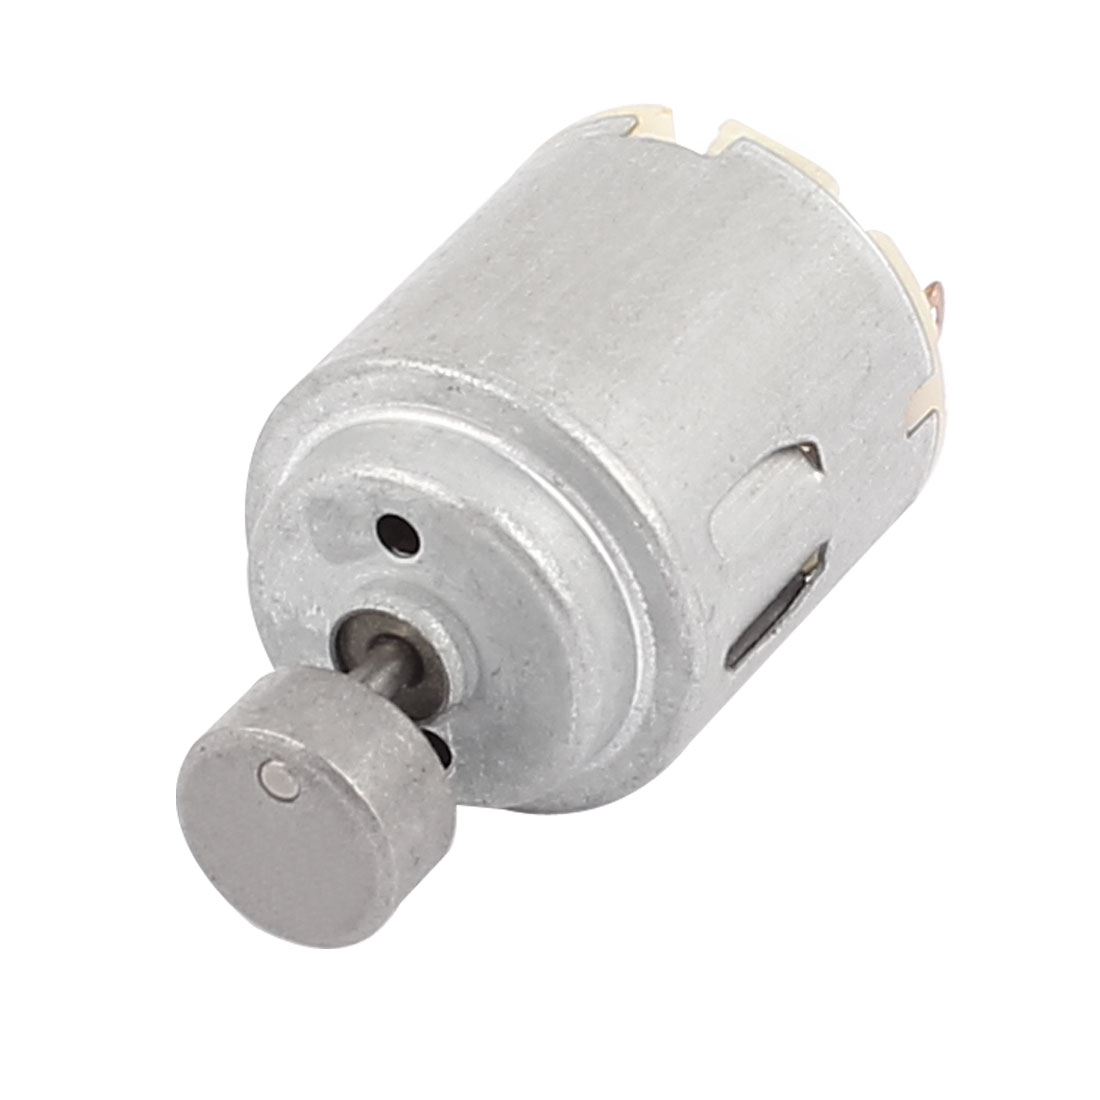 DC 1.5-6V 16500RPM Vibration Electric Micro Mini Motor 140 for Massager